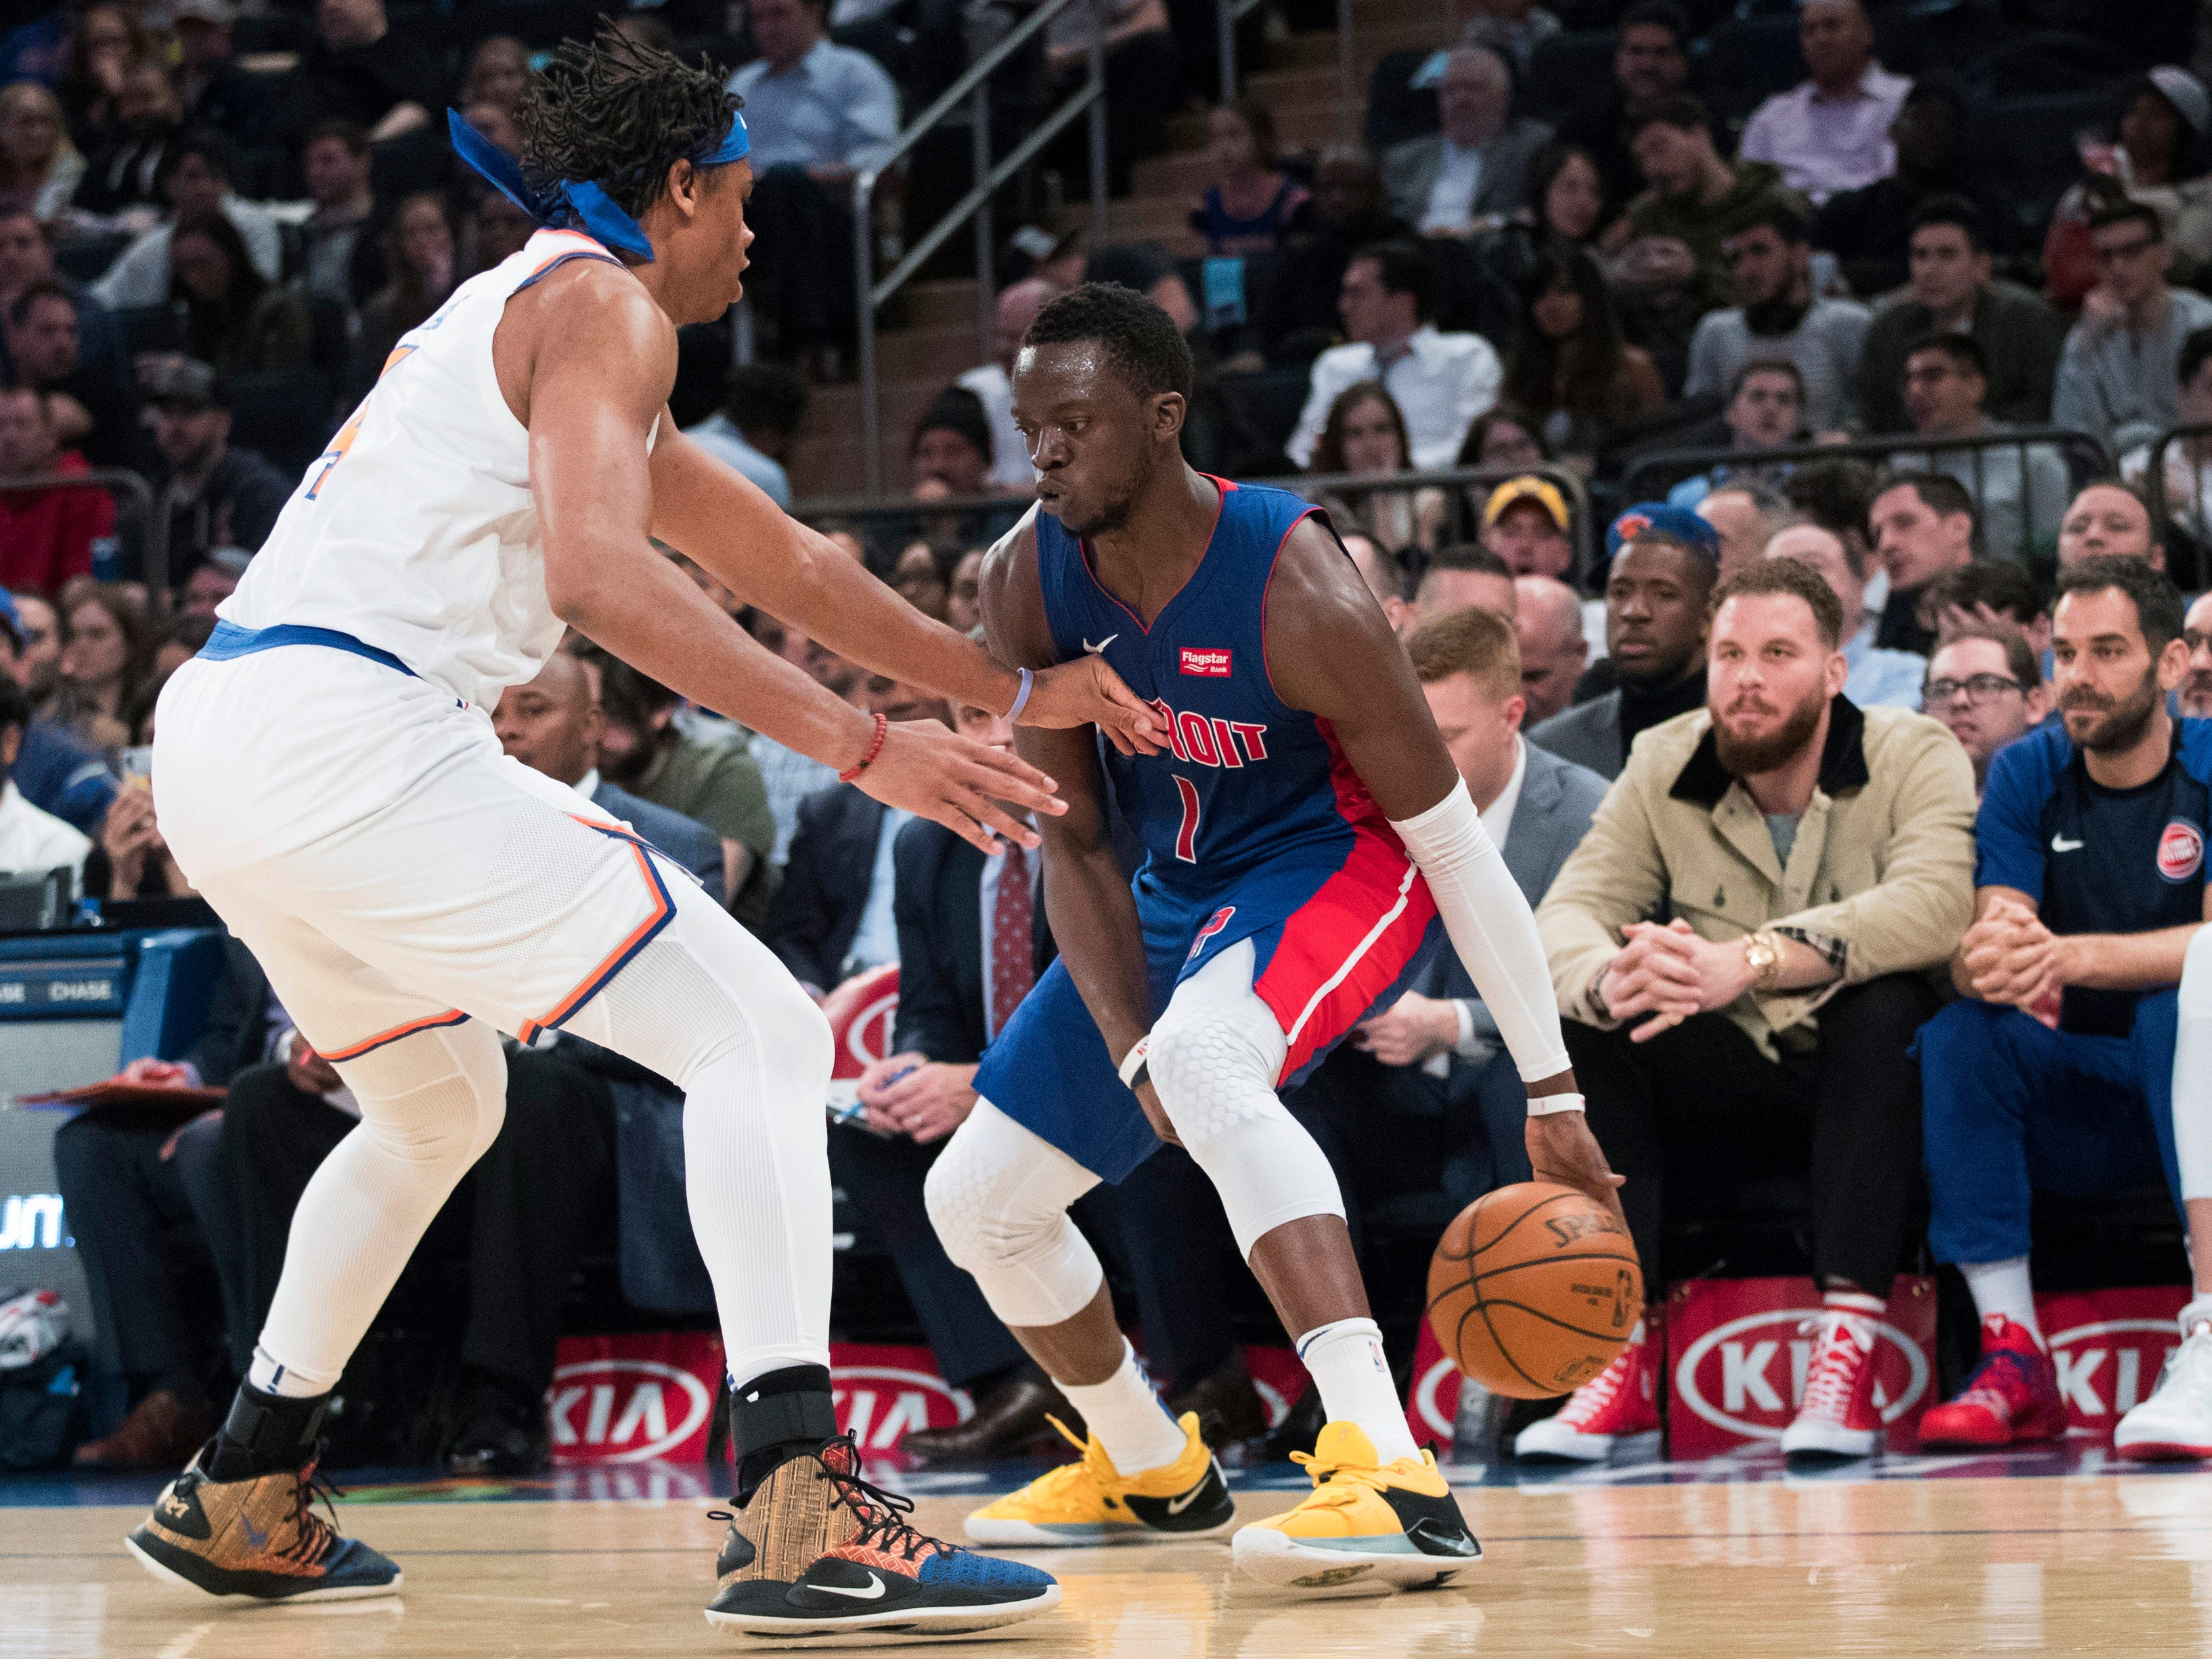 Detroit Pistons guard Reggie Jackson (1) drives against New York Knicks forward Isaiah Hicks during the first half of an NBA basketball game Wednesday, April 10, 2019, at Madison Square Garden in New York.